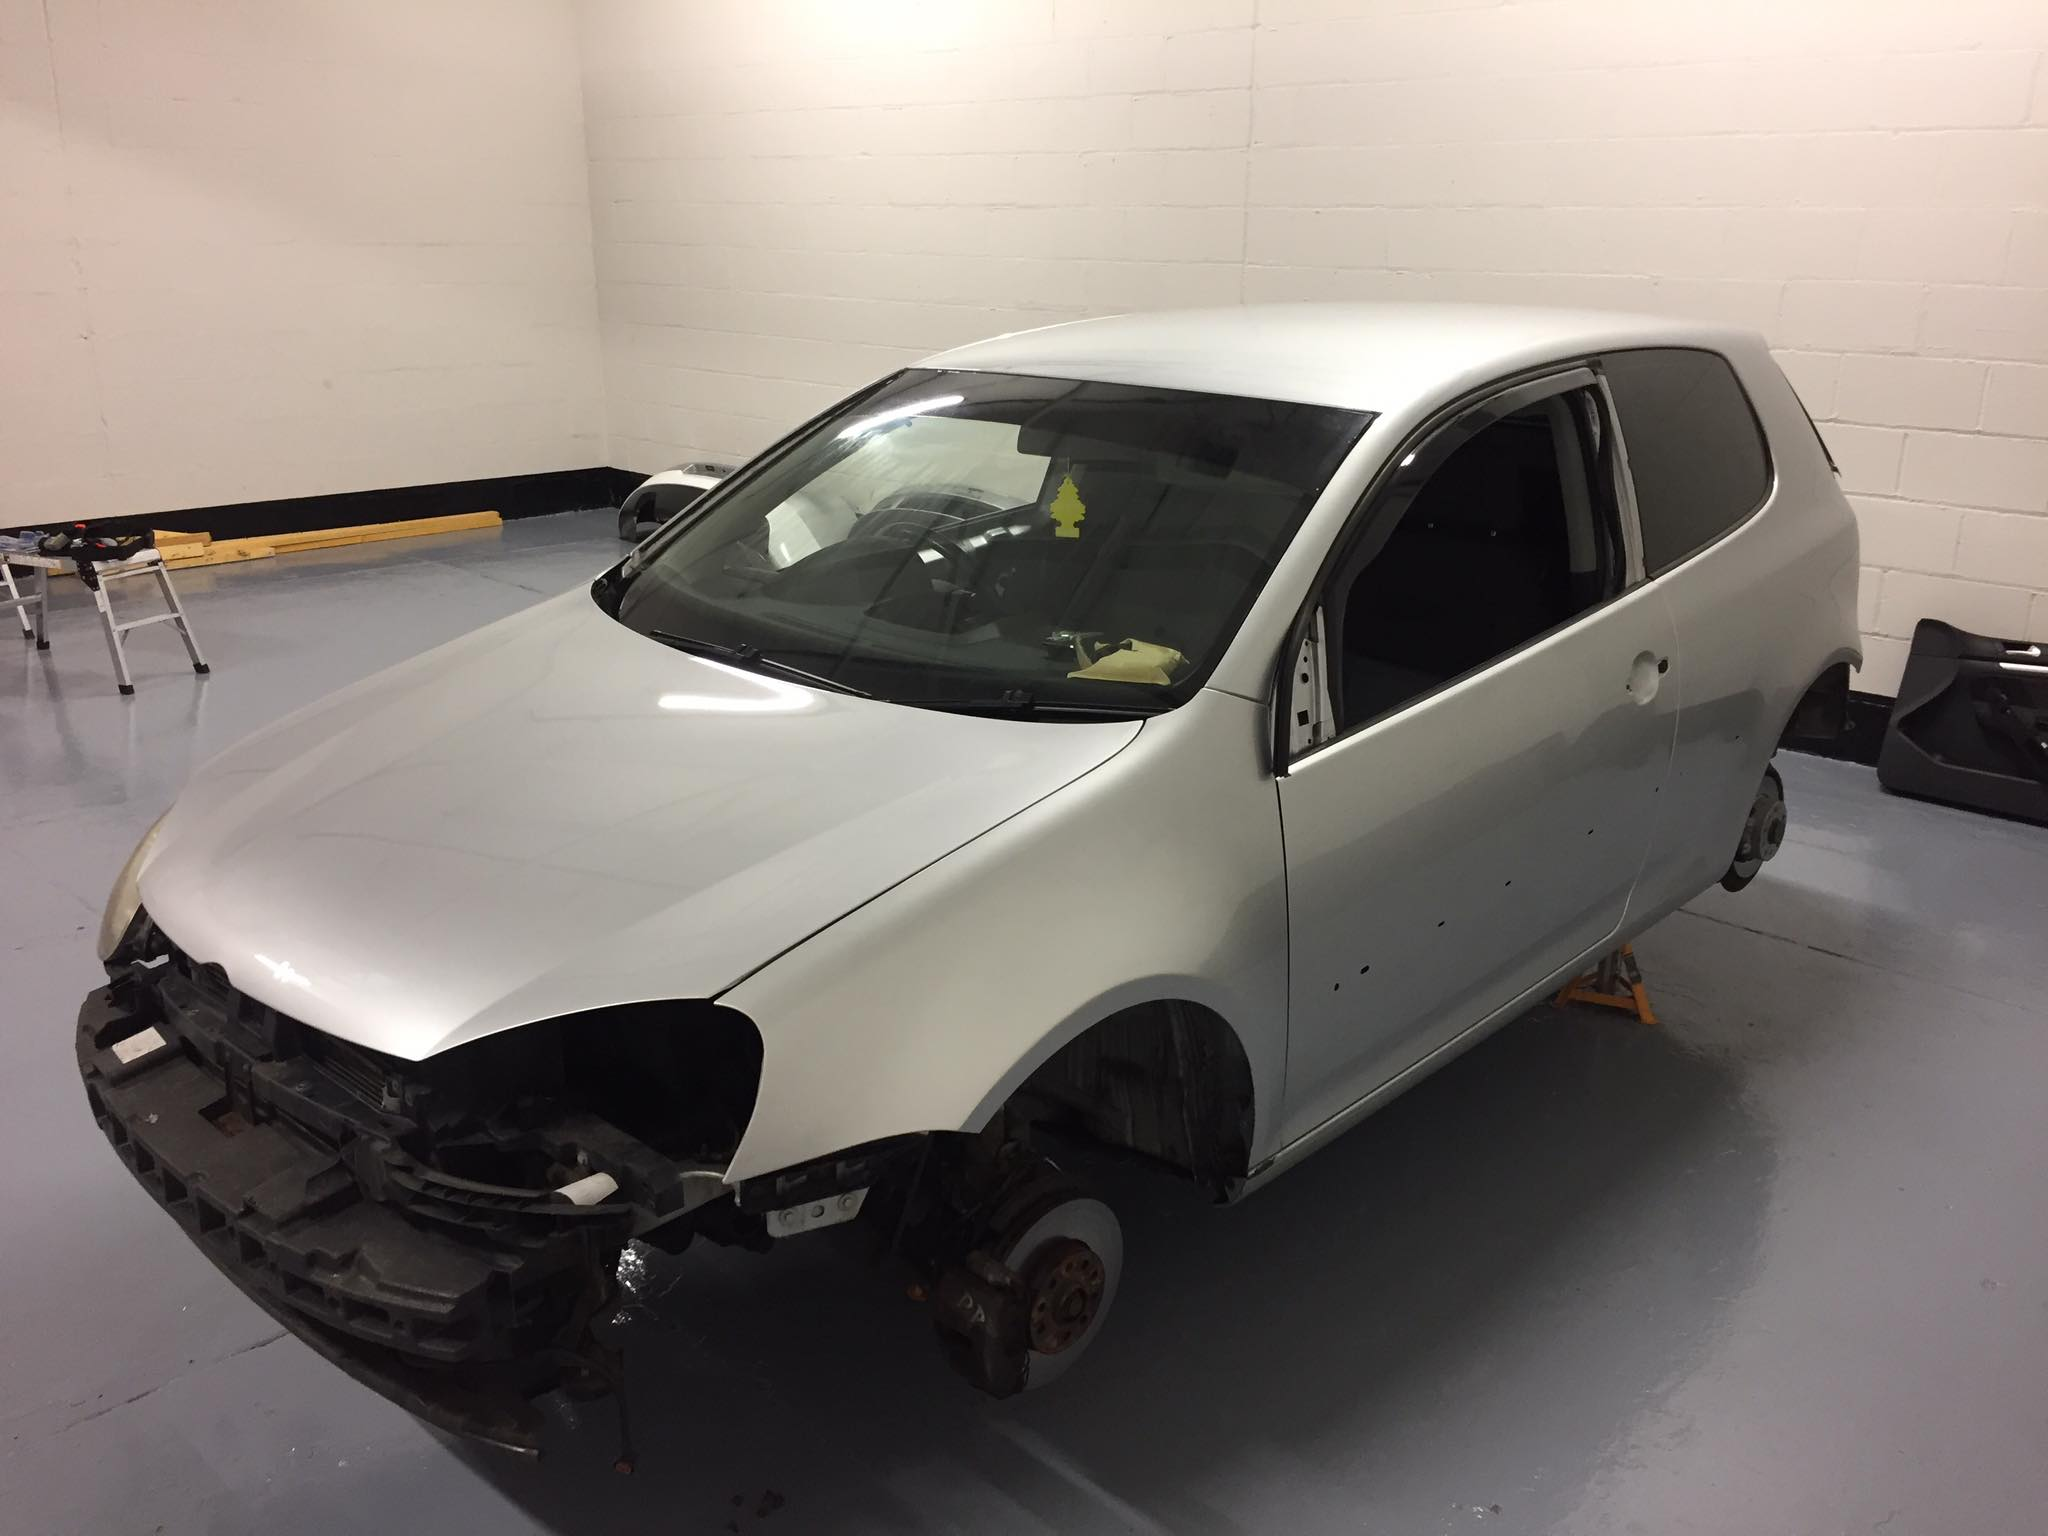 Stripped VW Golf pre wrap